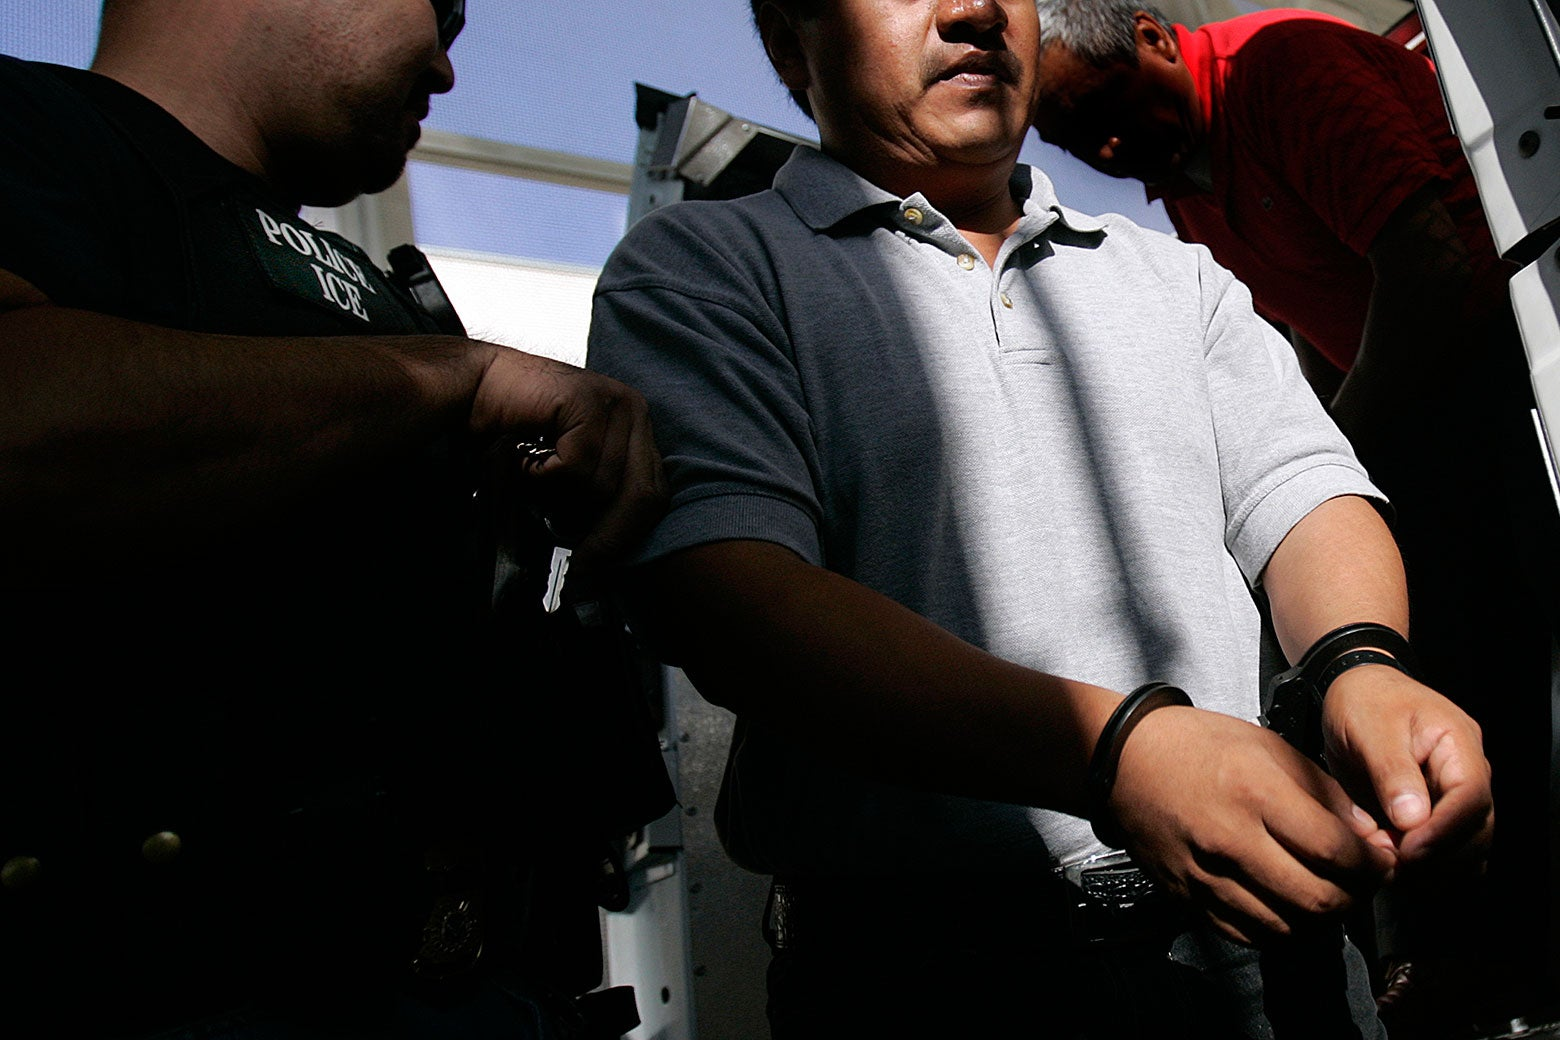 An Immigration and Customs Enforcement (ICE) Fugitive Operations Team member processes an arrest at the ICE Santa Ana Staging Facility in Santa Ana.